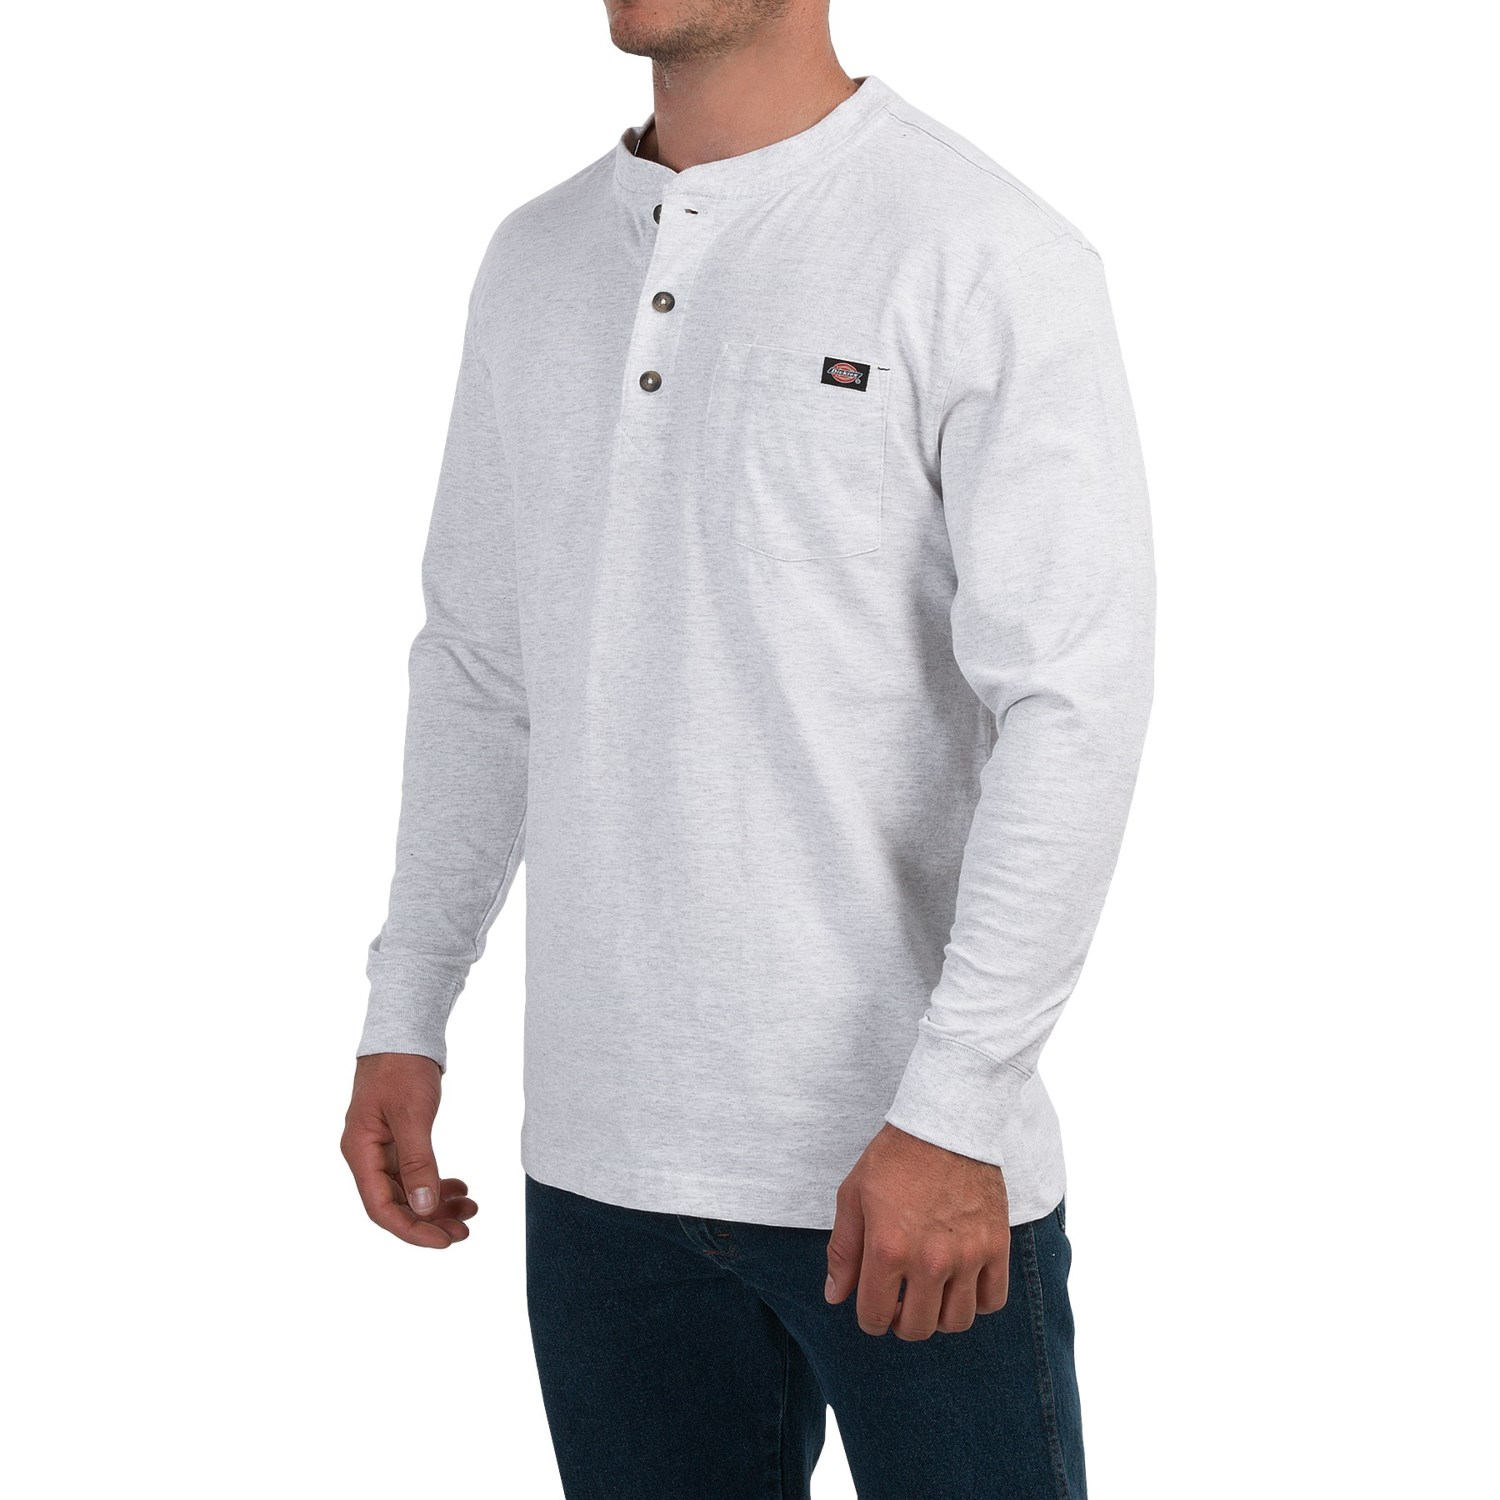 Shop the Carhartt Force® Cotton Delmont Short-Sleeve Henley for Men's at worldofweapons.tk for Men's Shirts that works as hard as you do/5(42).